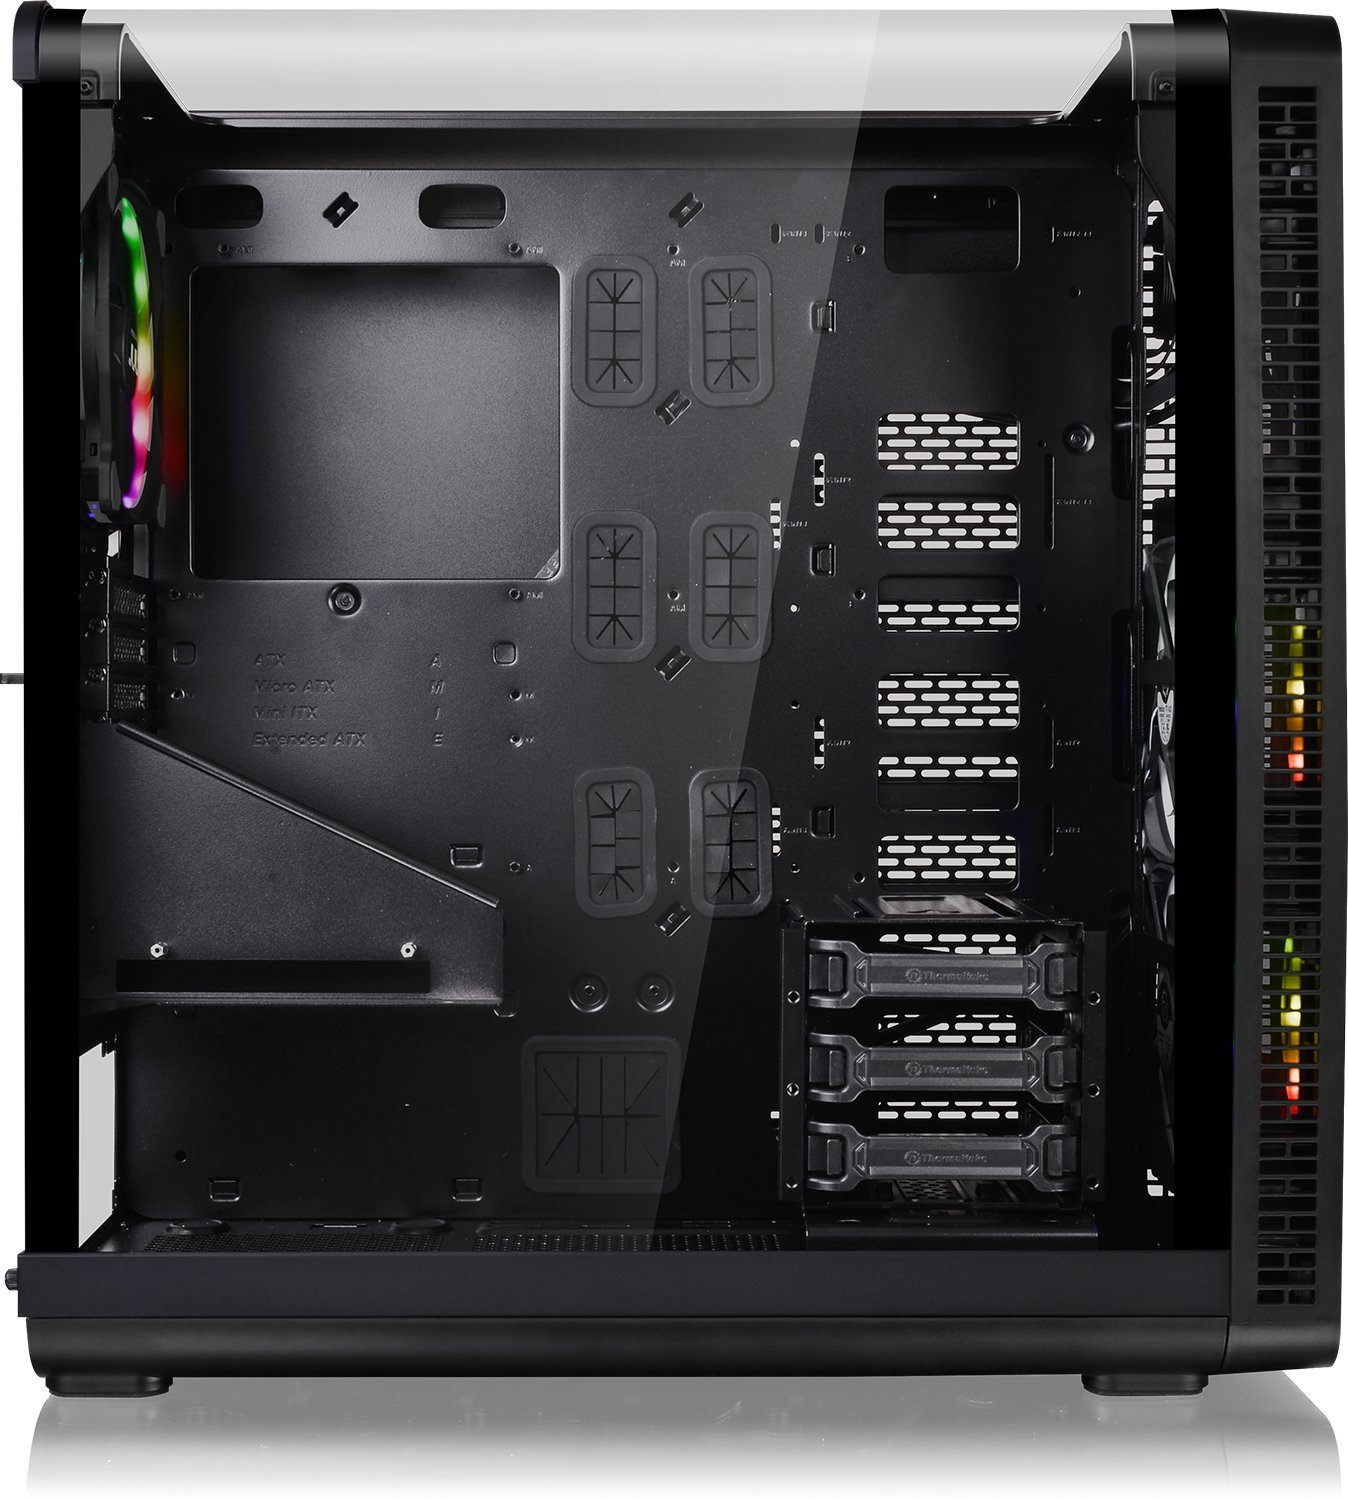 Thermaltake View 37 RGB Mid Tower Case for Gaming PC Black Amazon puters & Accessories